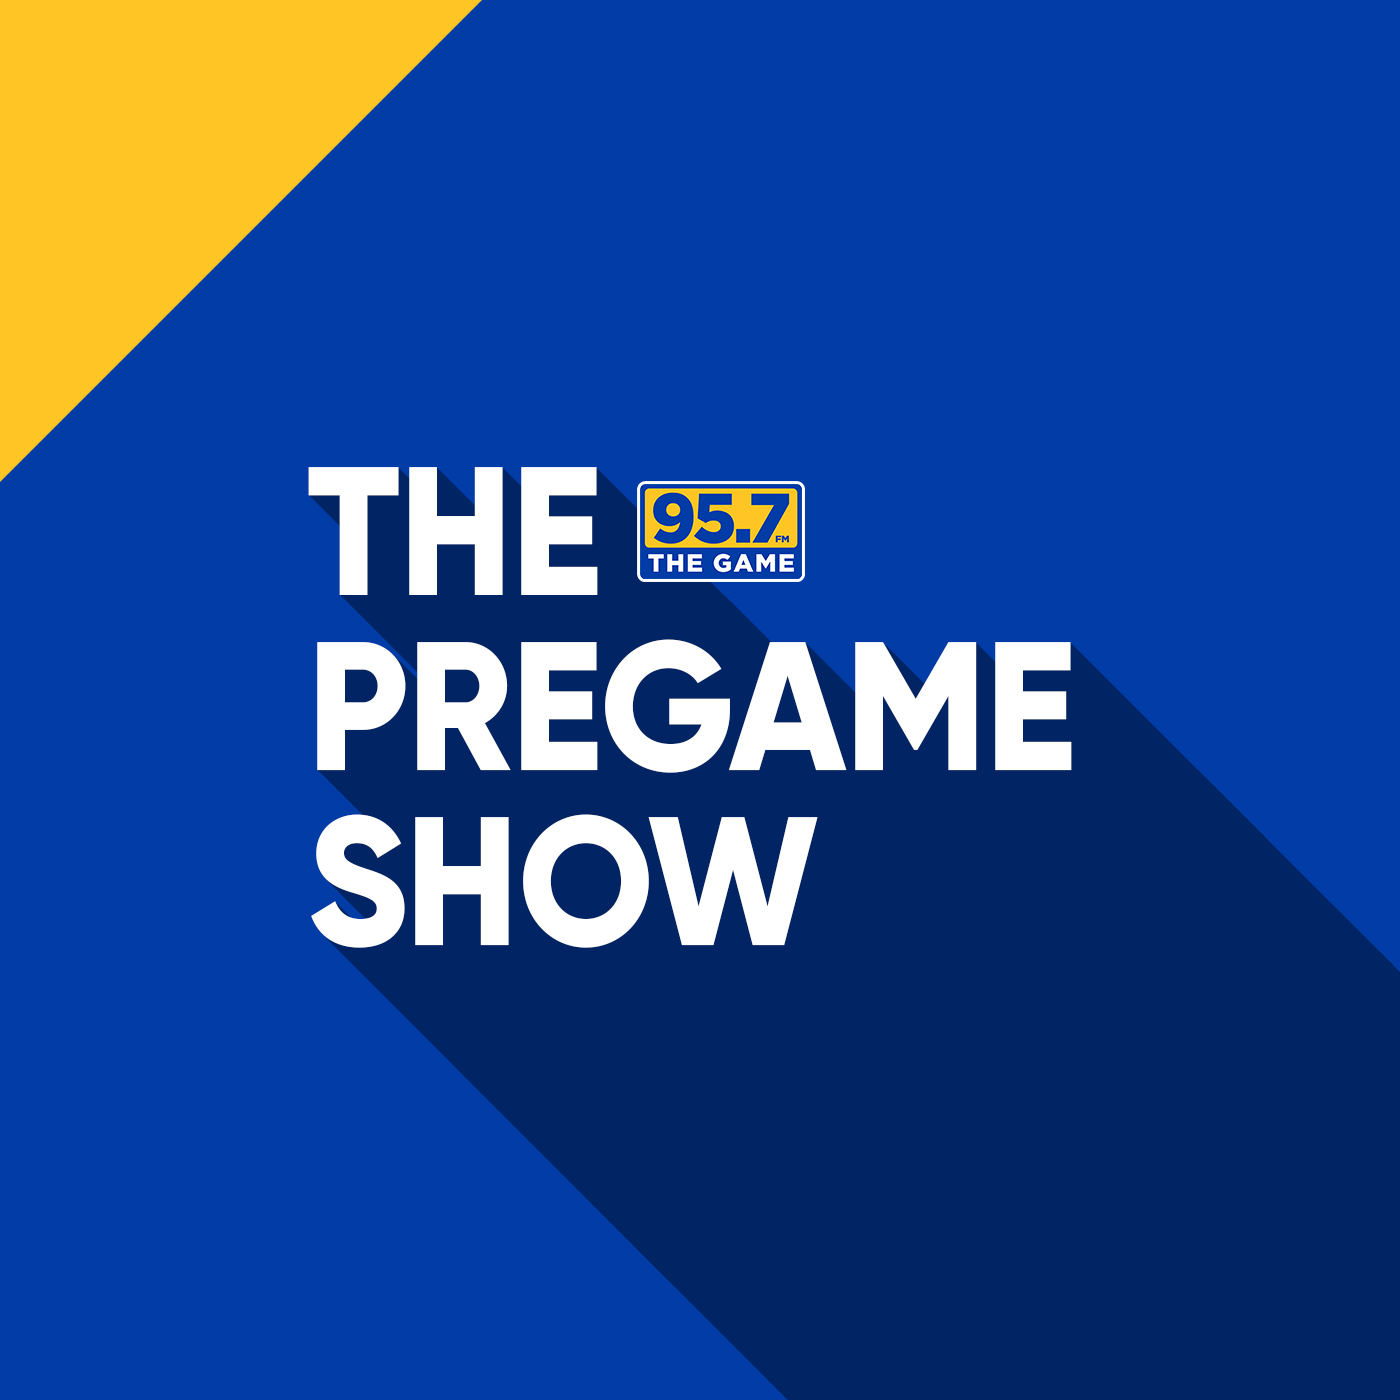 The Pregame Show with Steven Langford